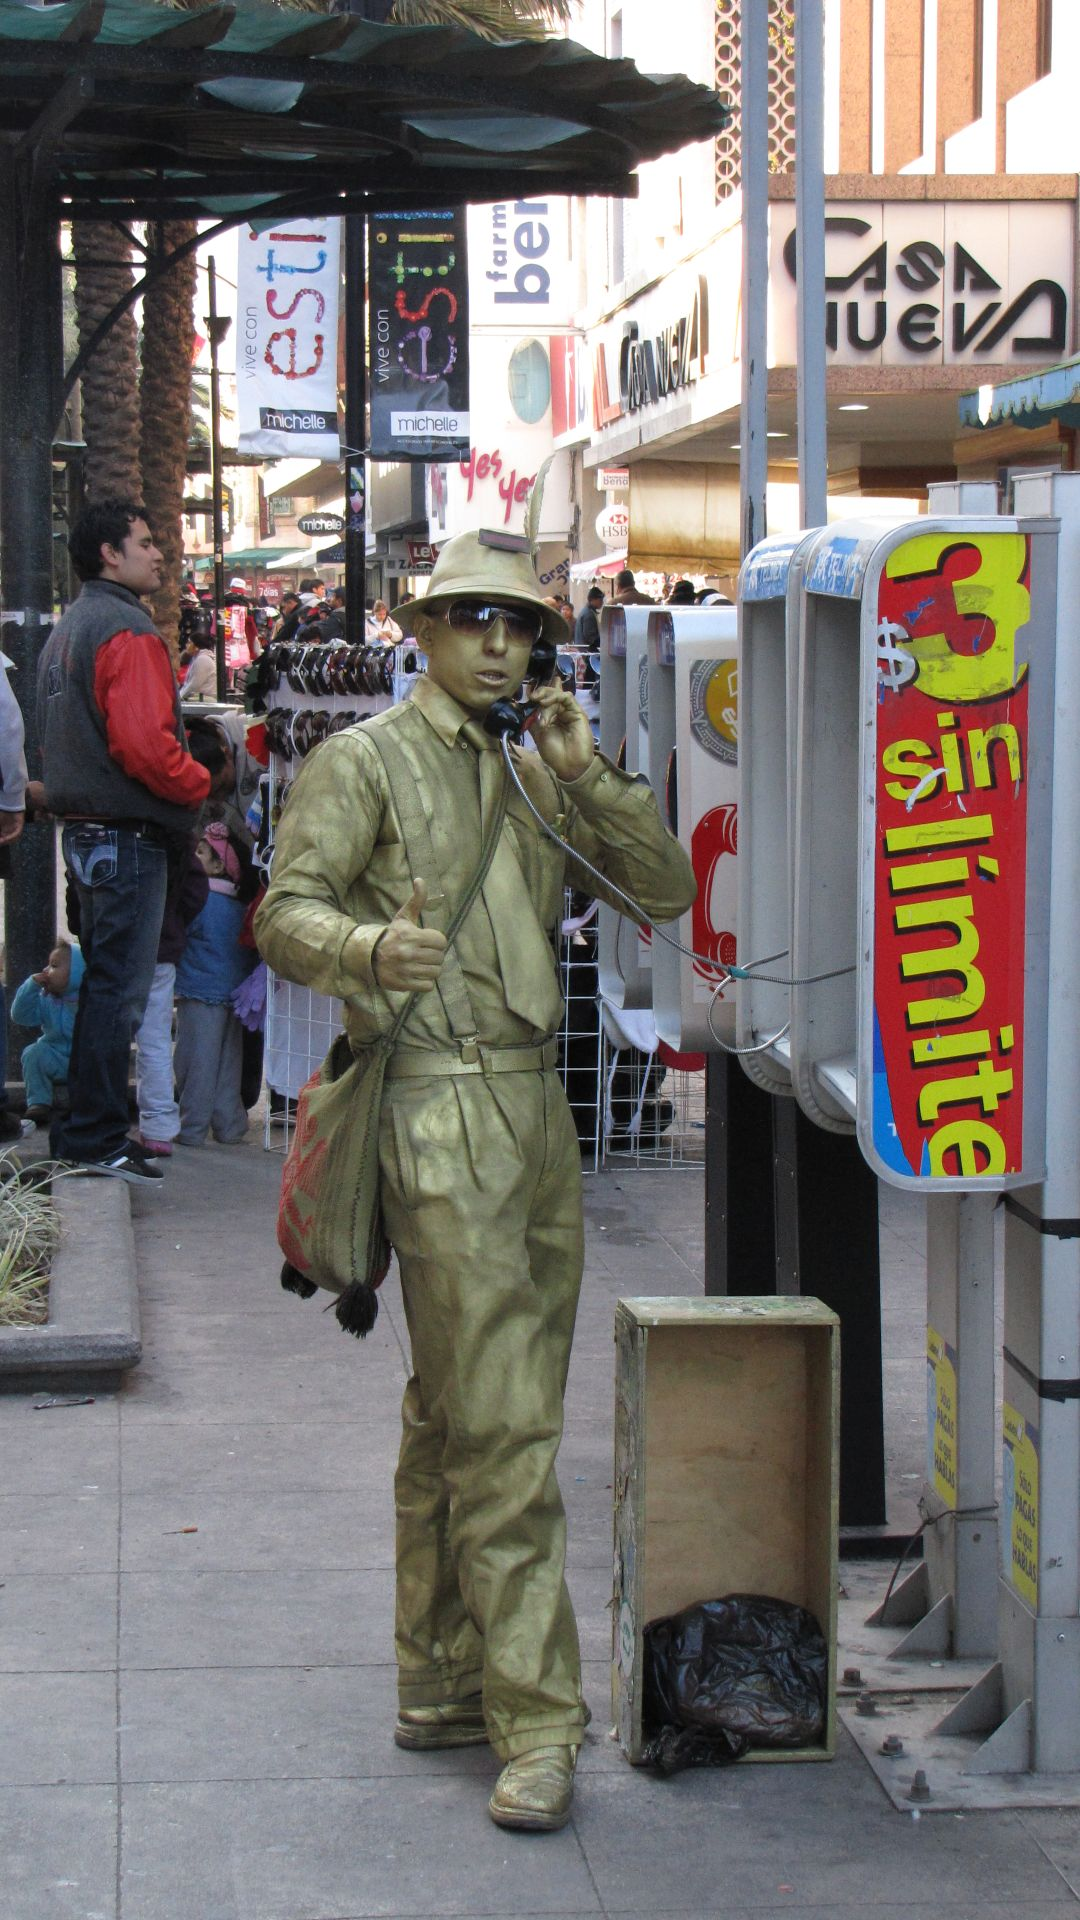 Monterrey, NL, Mexico - Even human-statues need to make a call every now and then